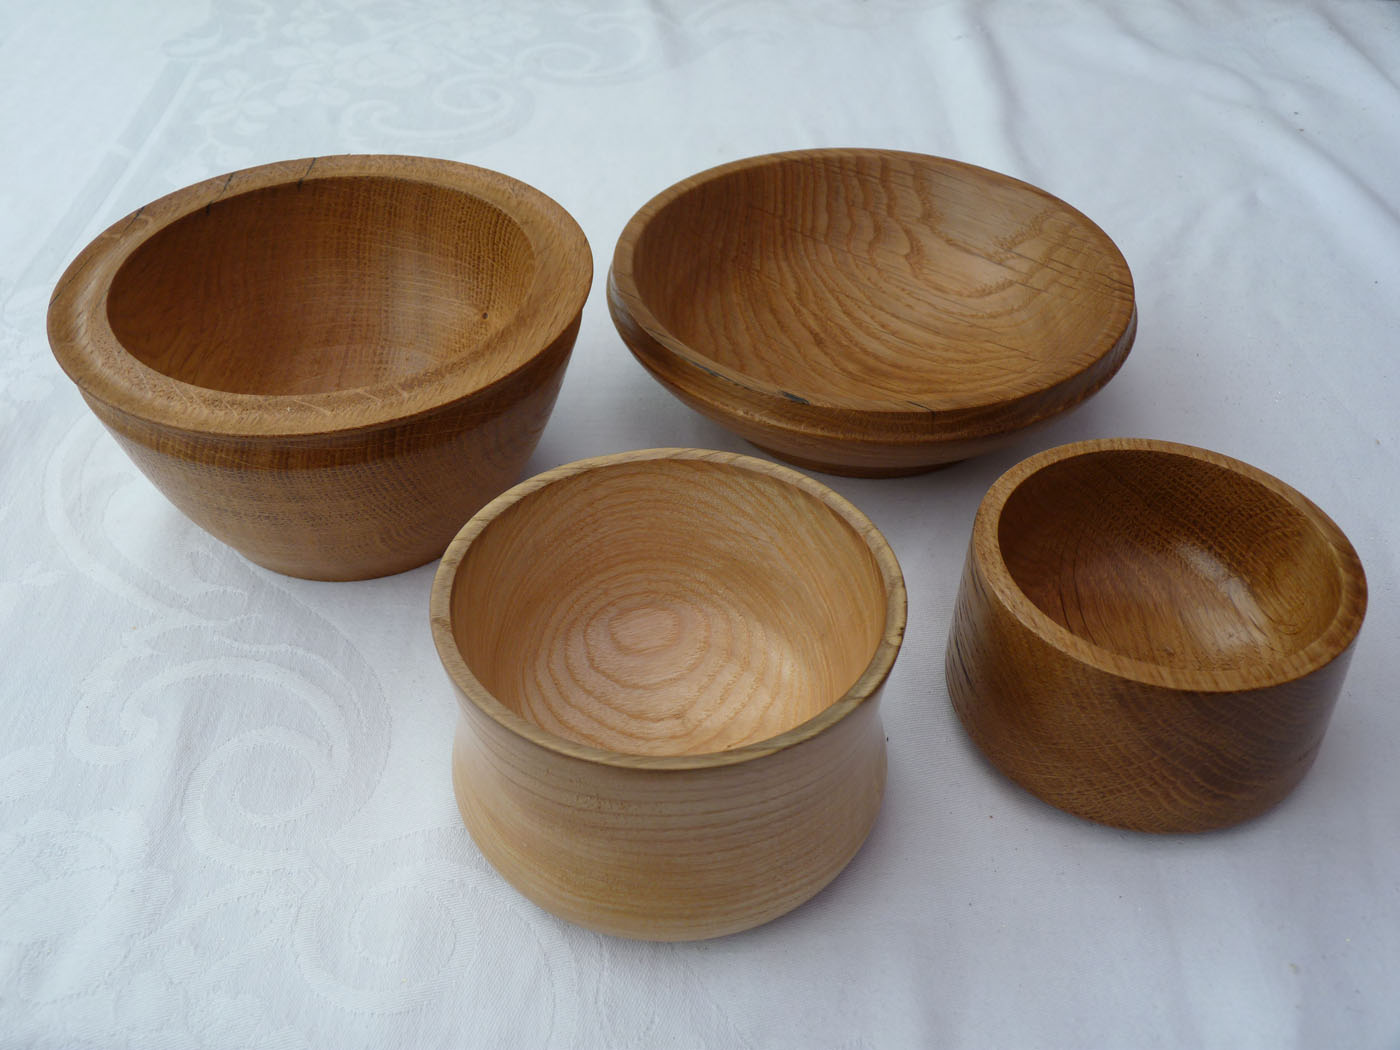 Woodturned Bowls - approx 15cm wide